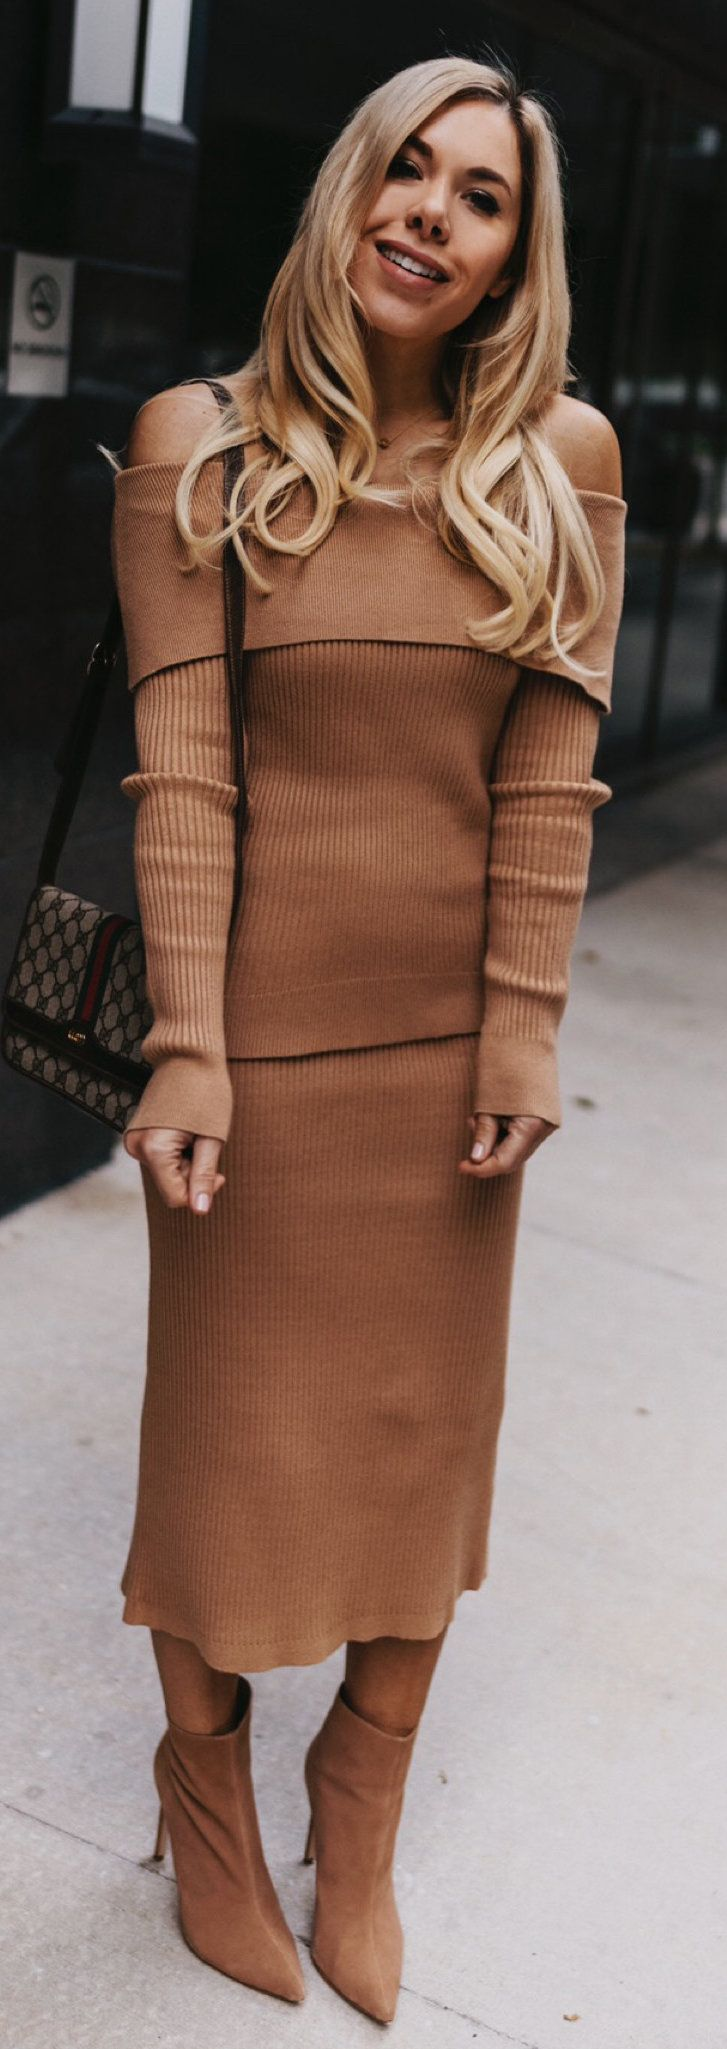 brown knit off-shoulder long-sleeved dress